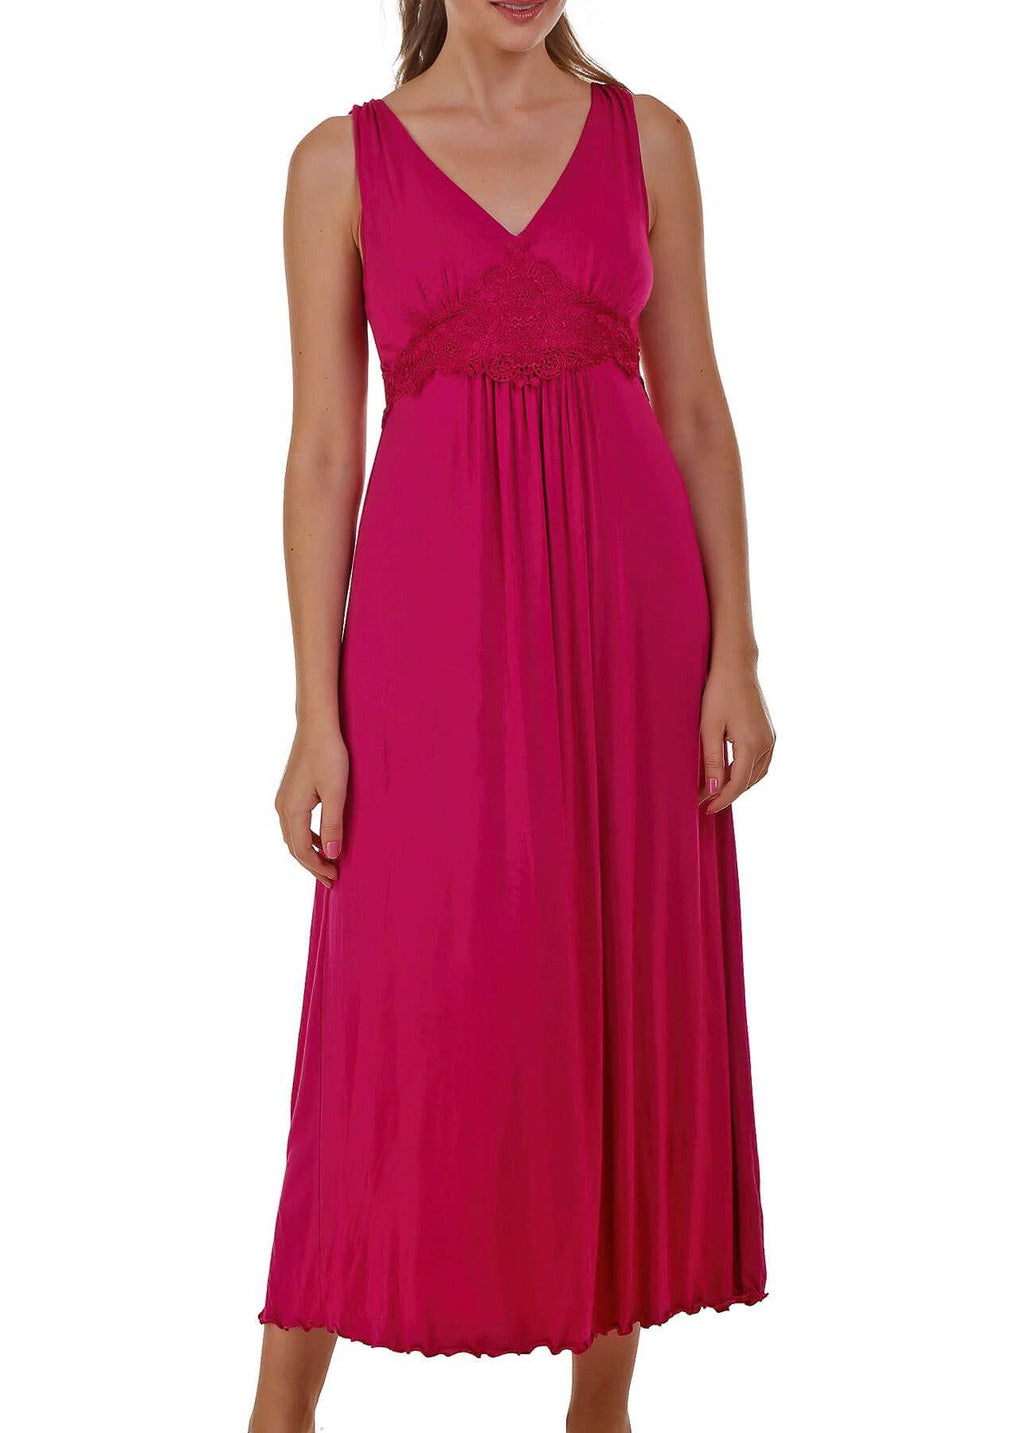 Dreamy Nightgown - Berry Mystique Intimates